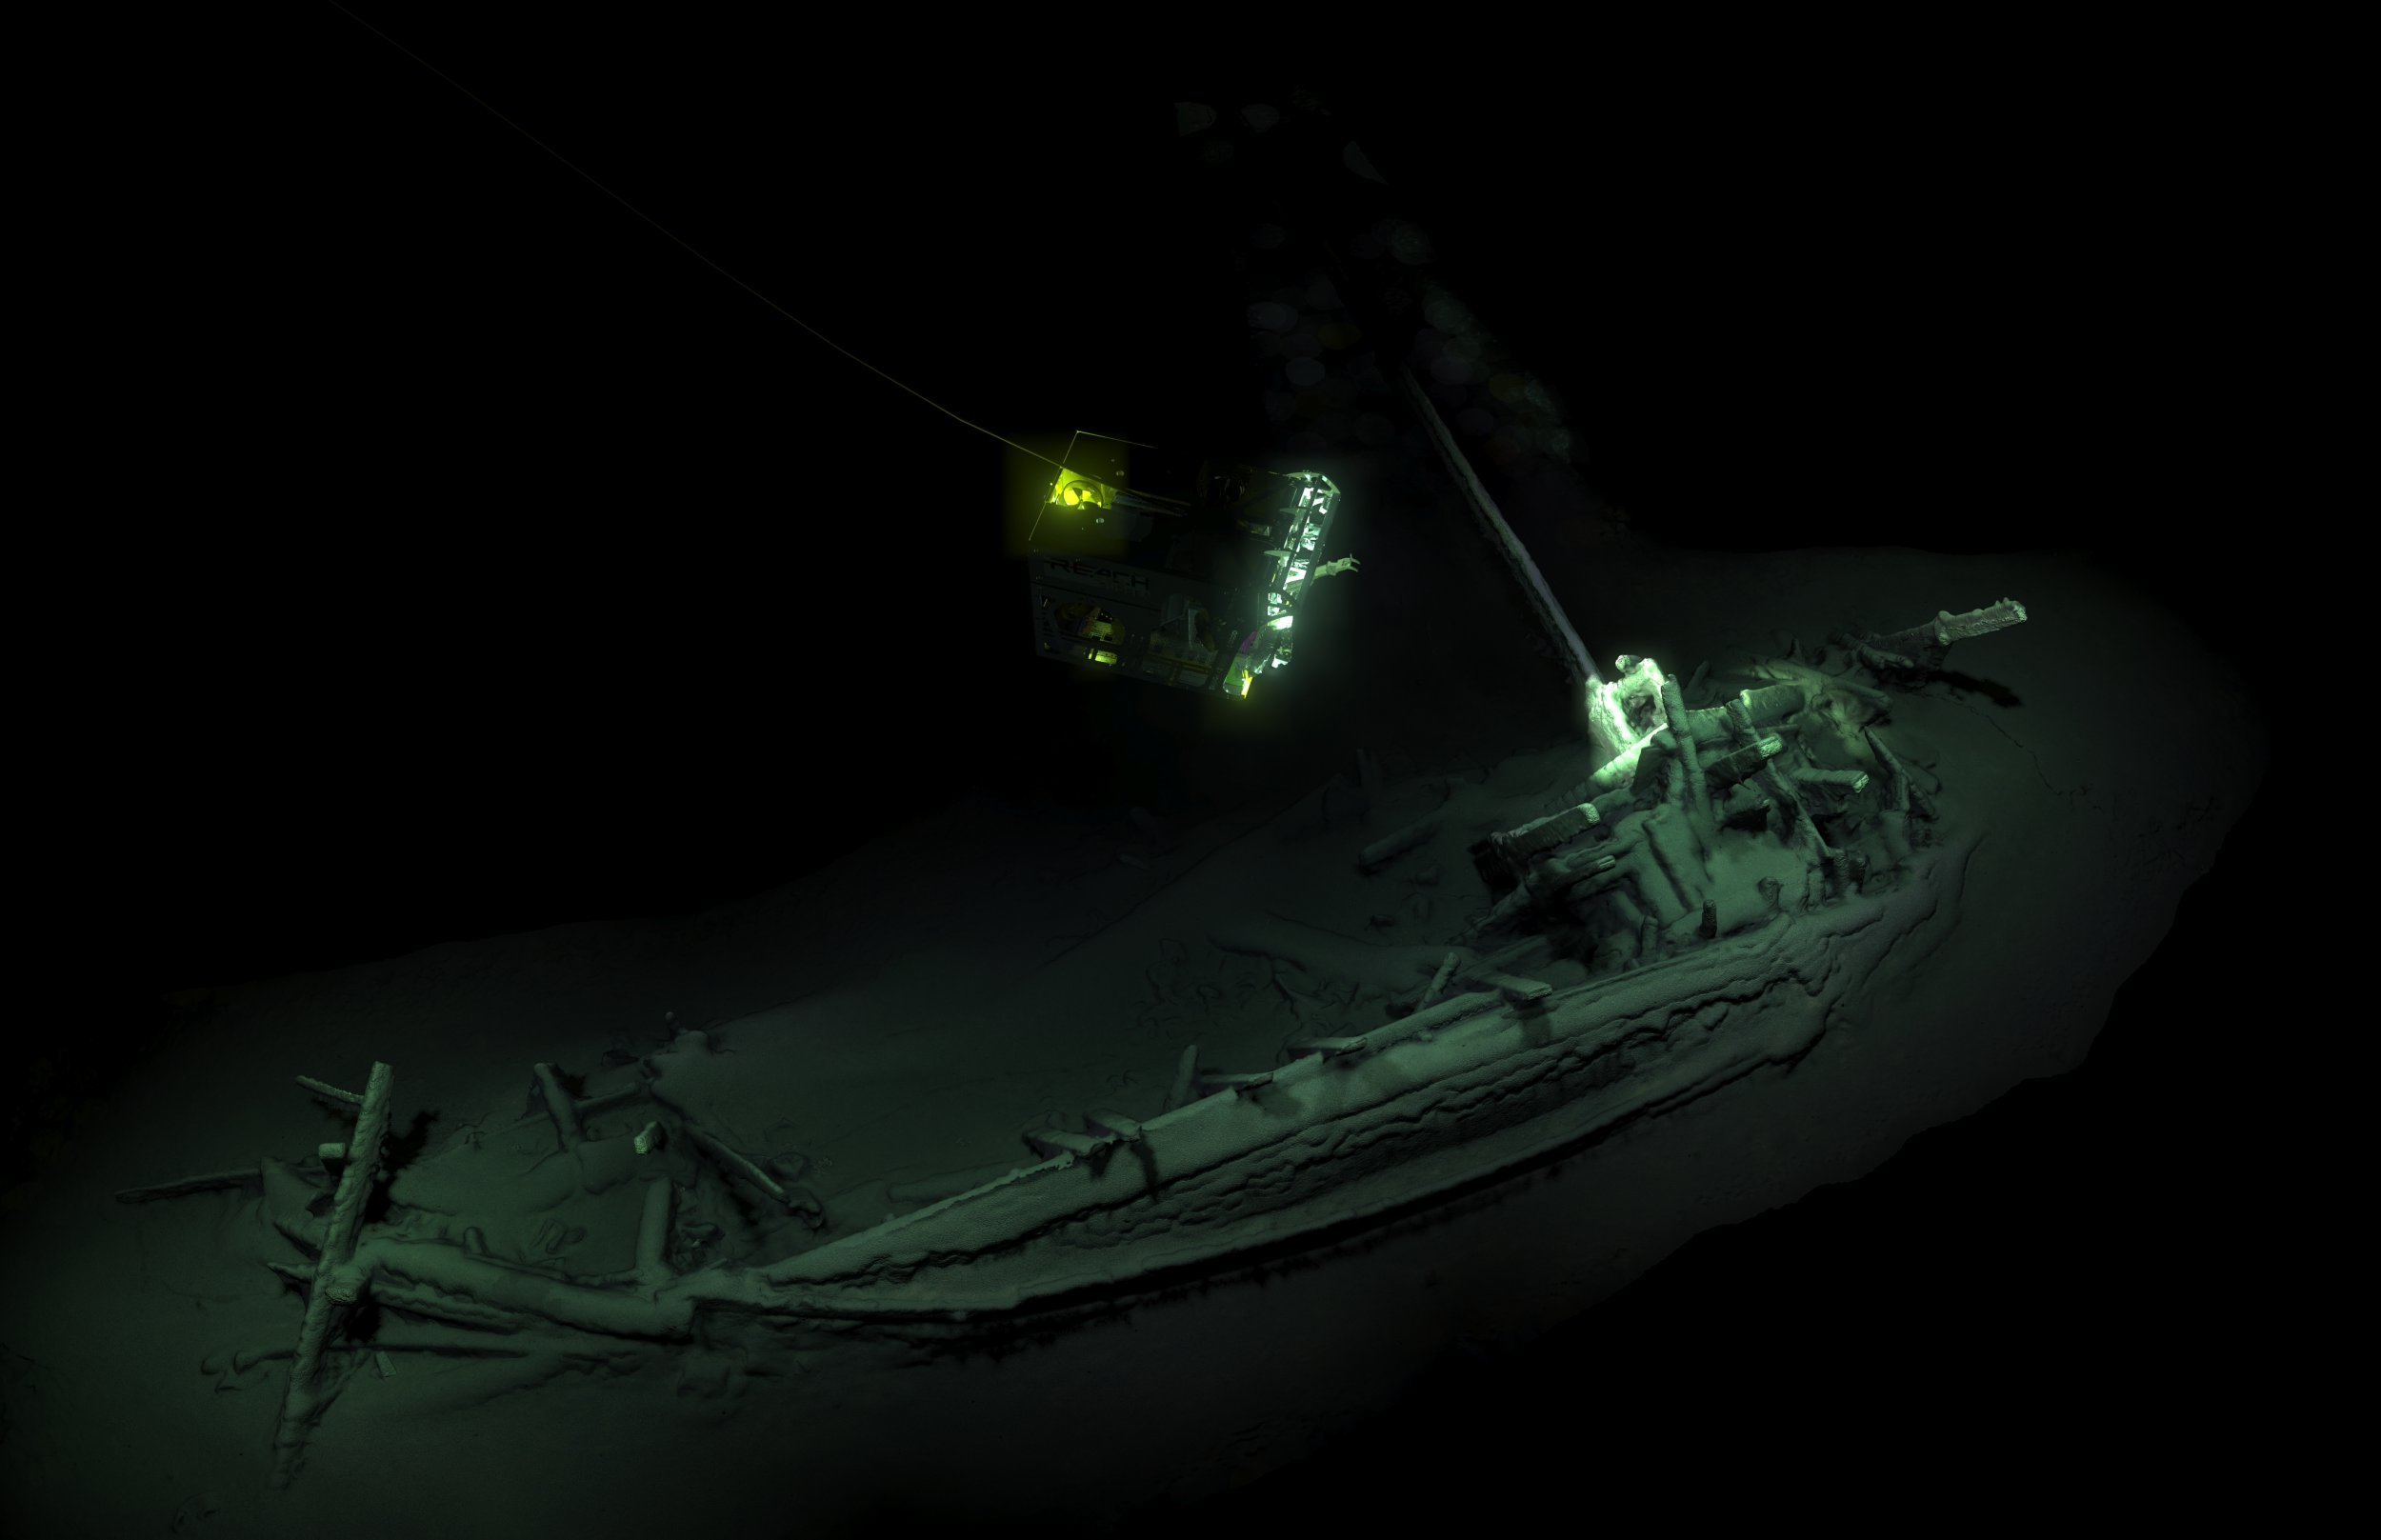 PRESS HANDOUT: World's Oldest Intact Shipwreck Found by British Scientist. British Museum in London to Unveil the Story. Black Sea Maritime Archaeological Project. The Expedition has located and confirmed via carbon dating that the world?s oldest shipwreck has been found at the bottom of the Black Sea. Incredibly well preserved this wreck is carbon dated to 5000BC. Pic shows: 3D Image of World's Oldest Shipwreck